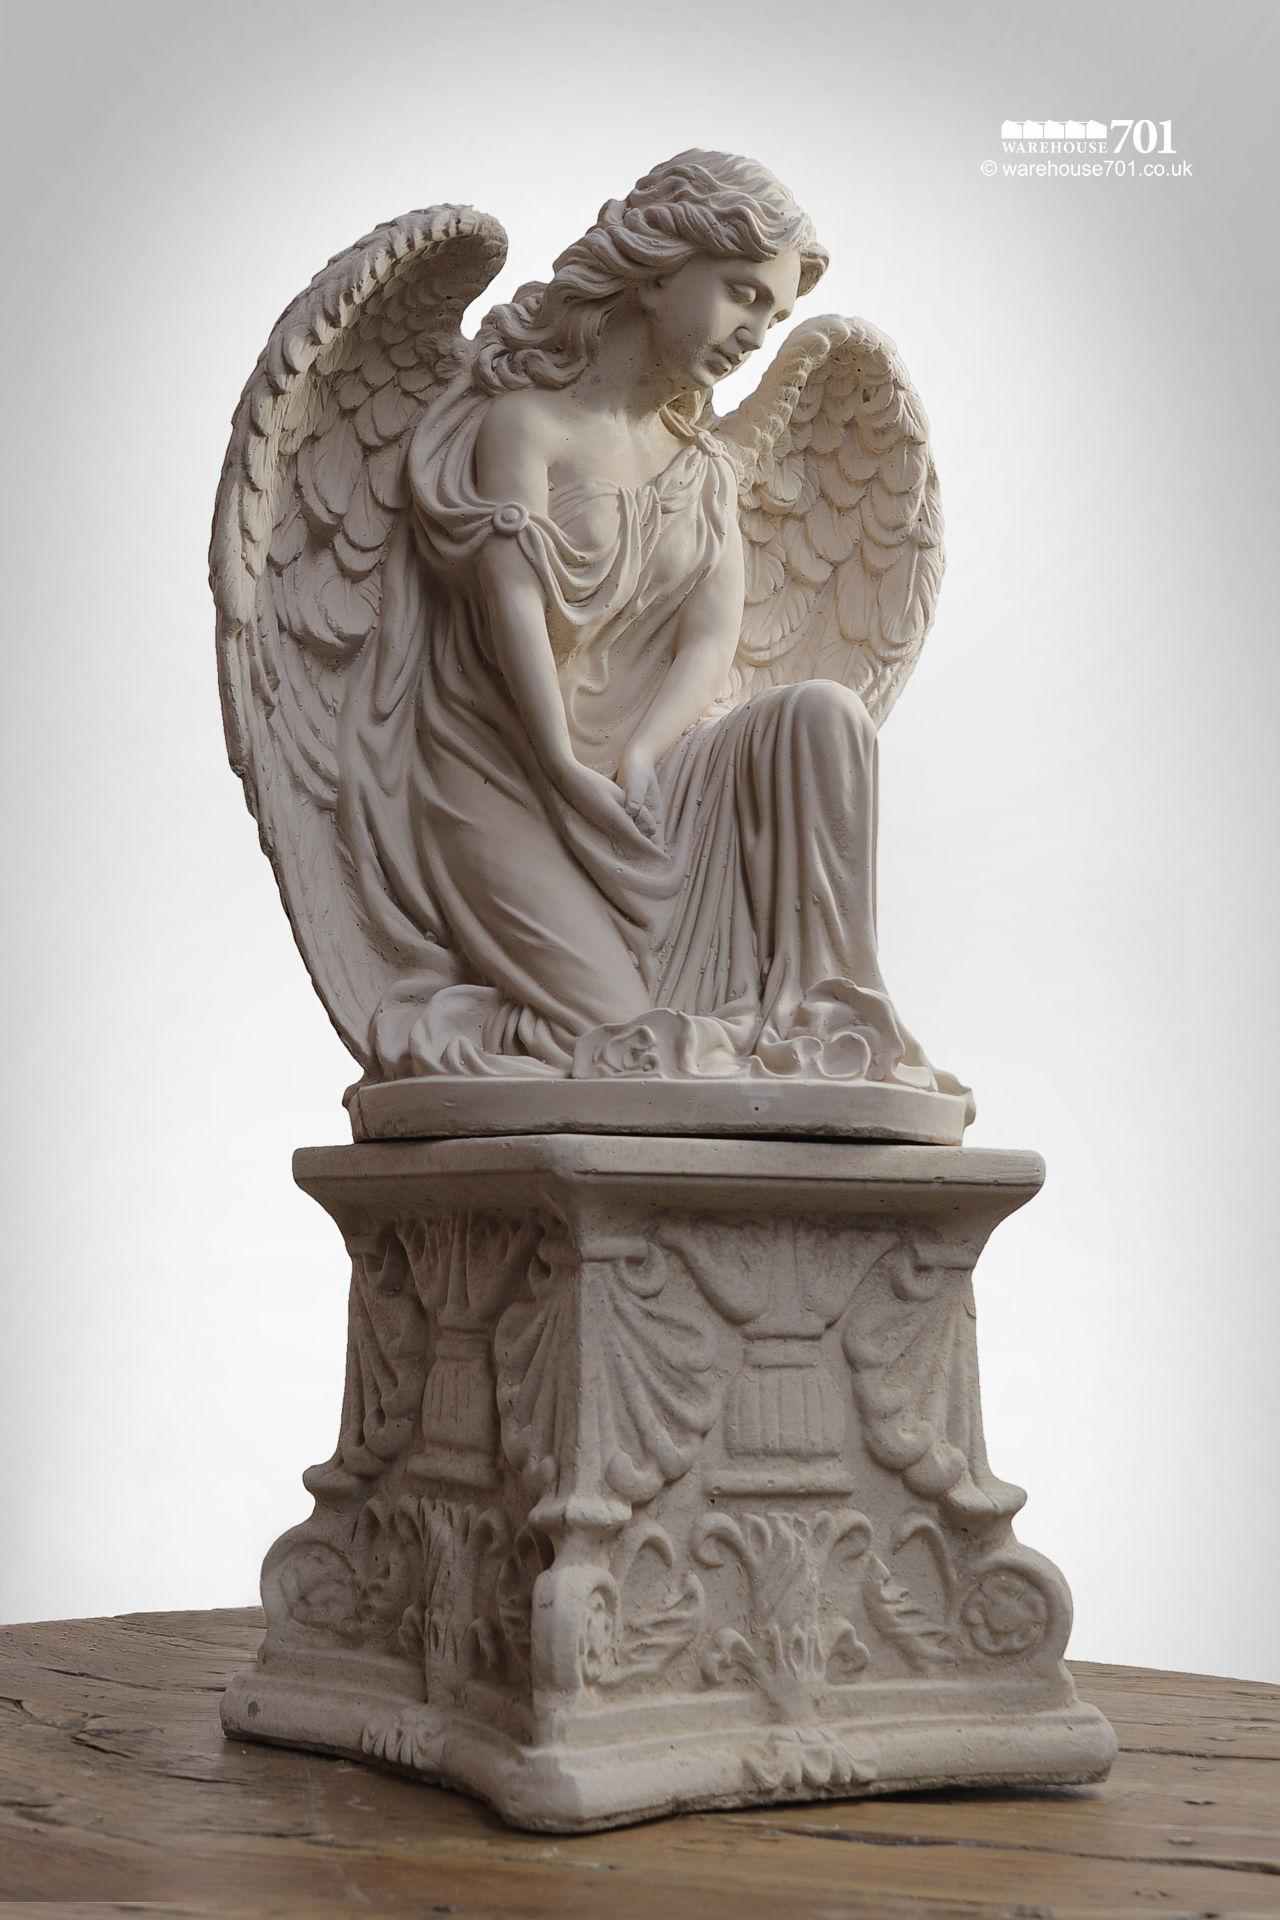 New Cast Stone Kneeling Angel Garden Statue or Figure